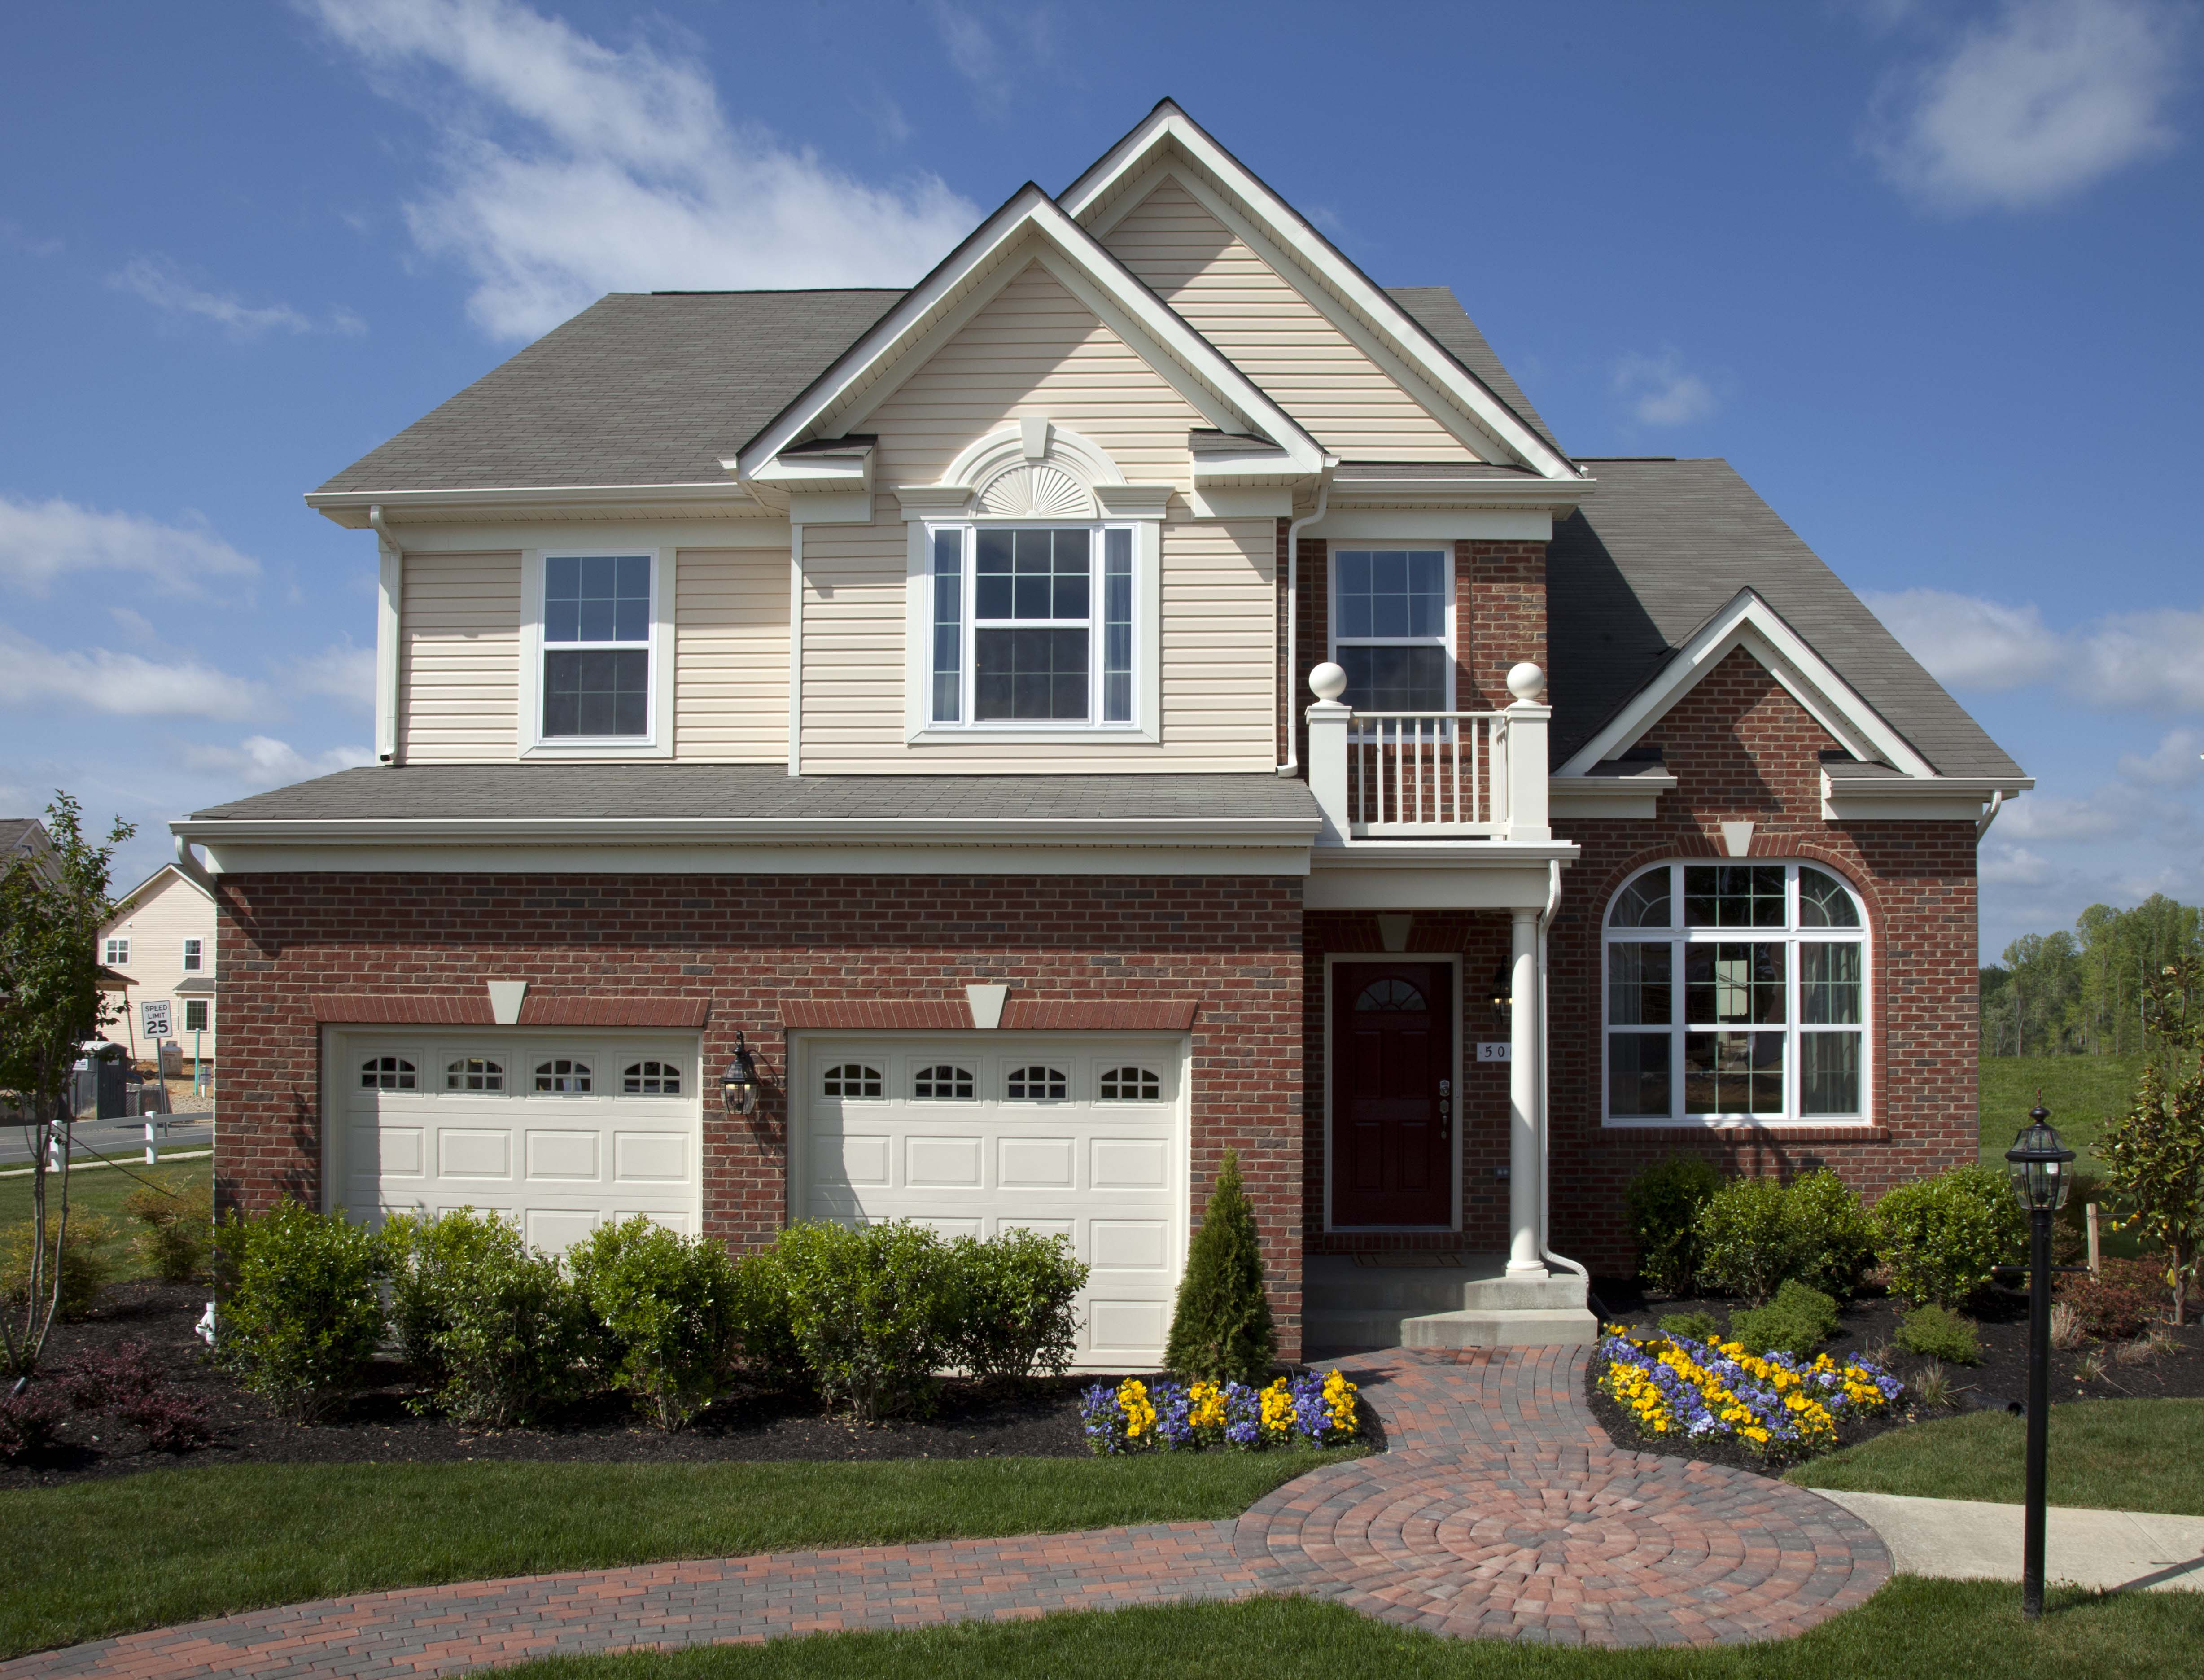 St charles md model home fair announced for saturday New home models